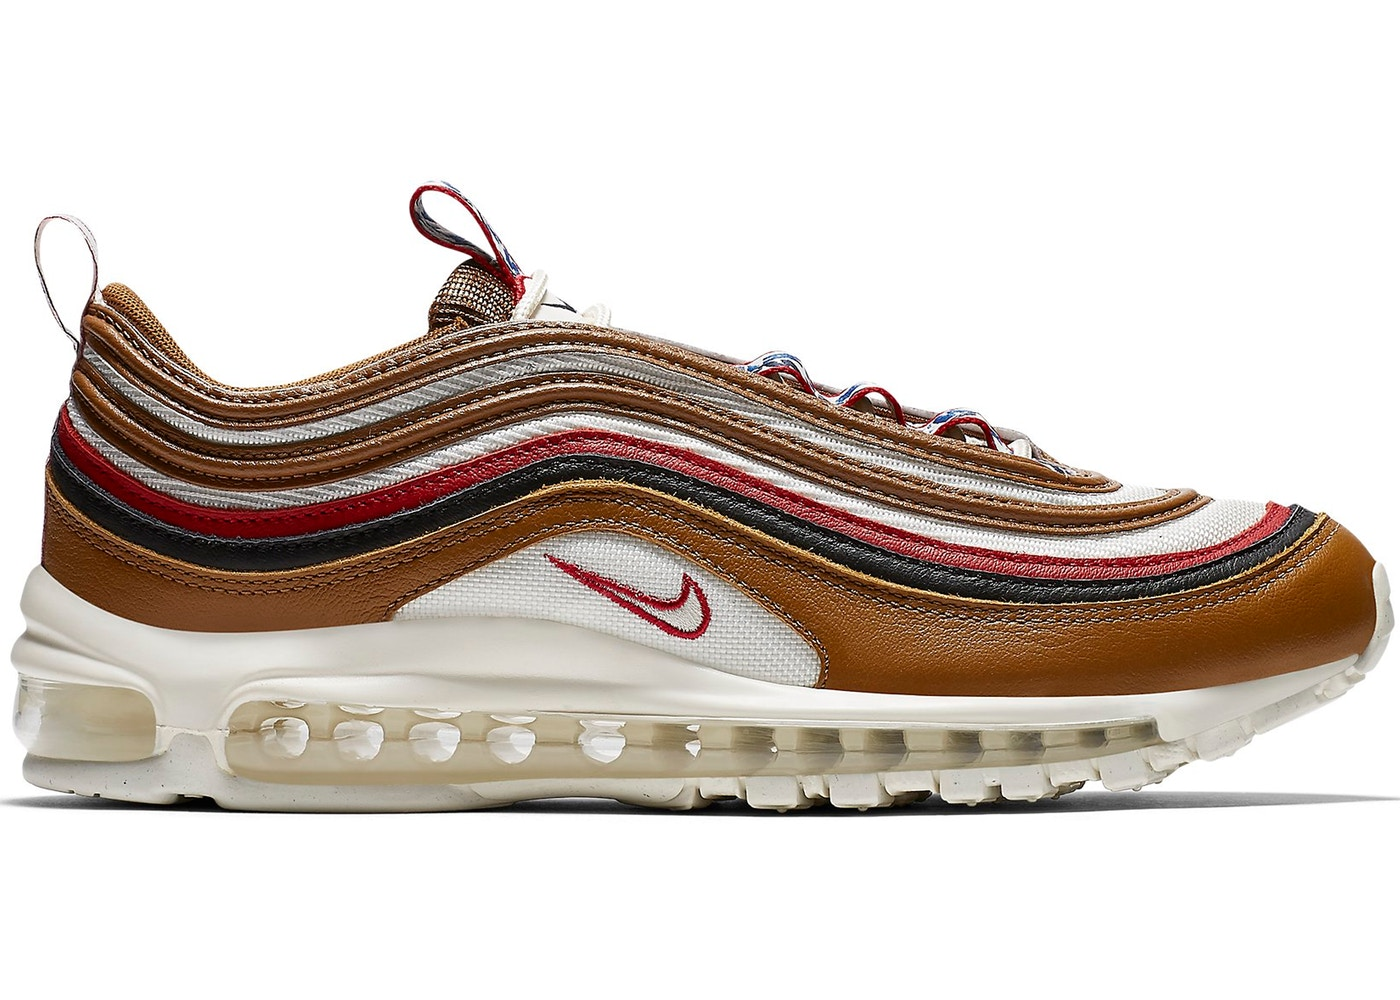 003ef9f610 Sell. or Ask. Size: 10.5. View All Bids. Air Max 97 Pull Tab Brown